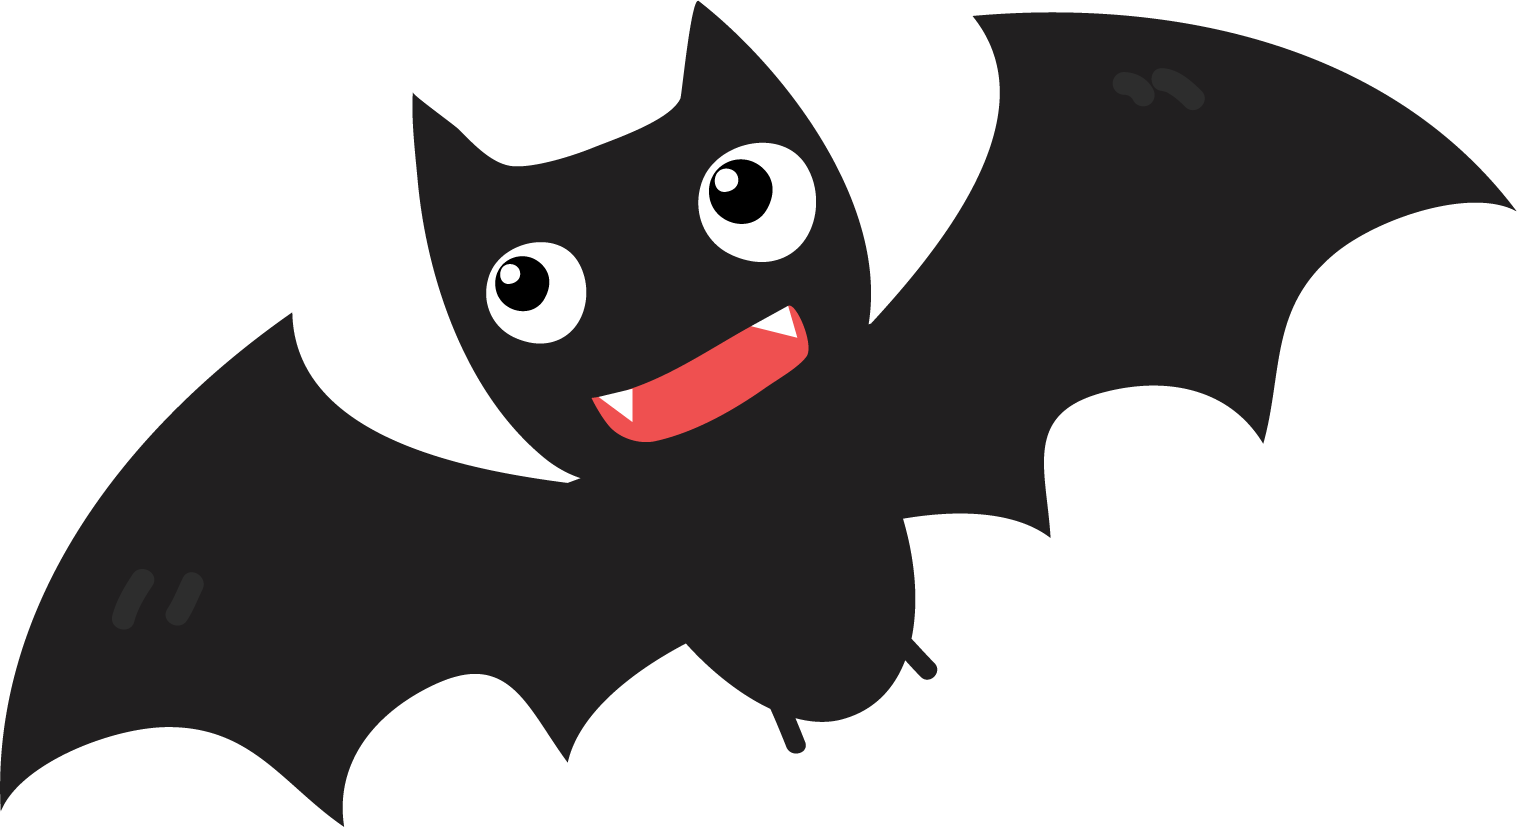 jpg royalty free library  collection of animal. Bat clipart.